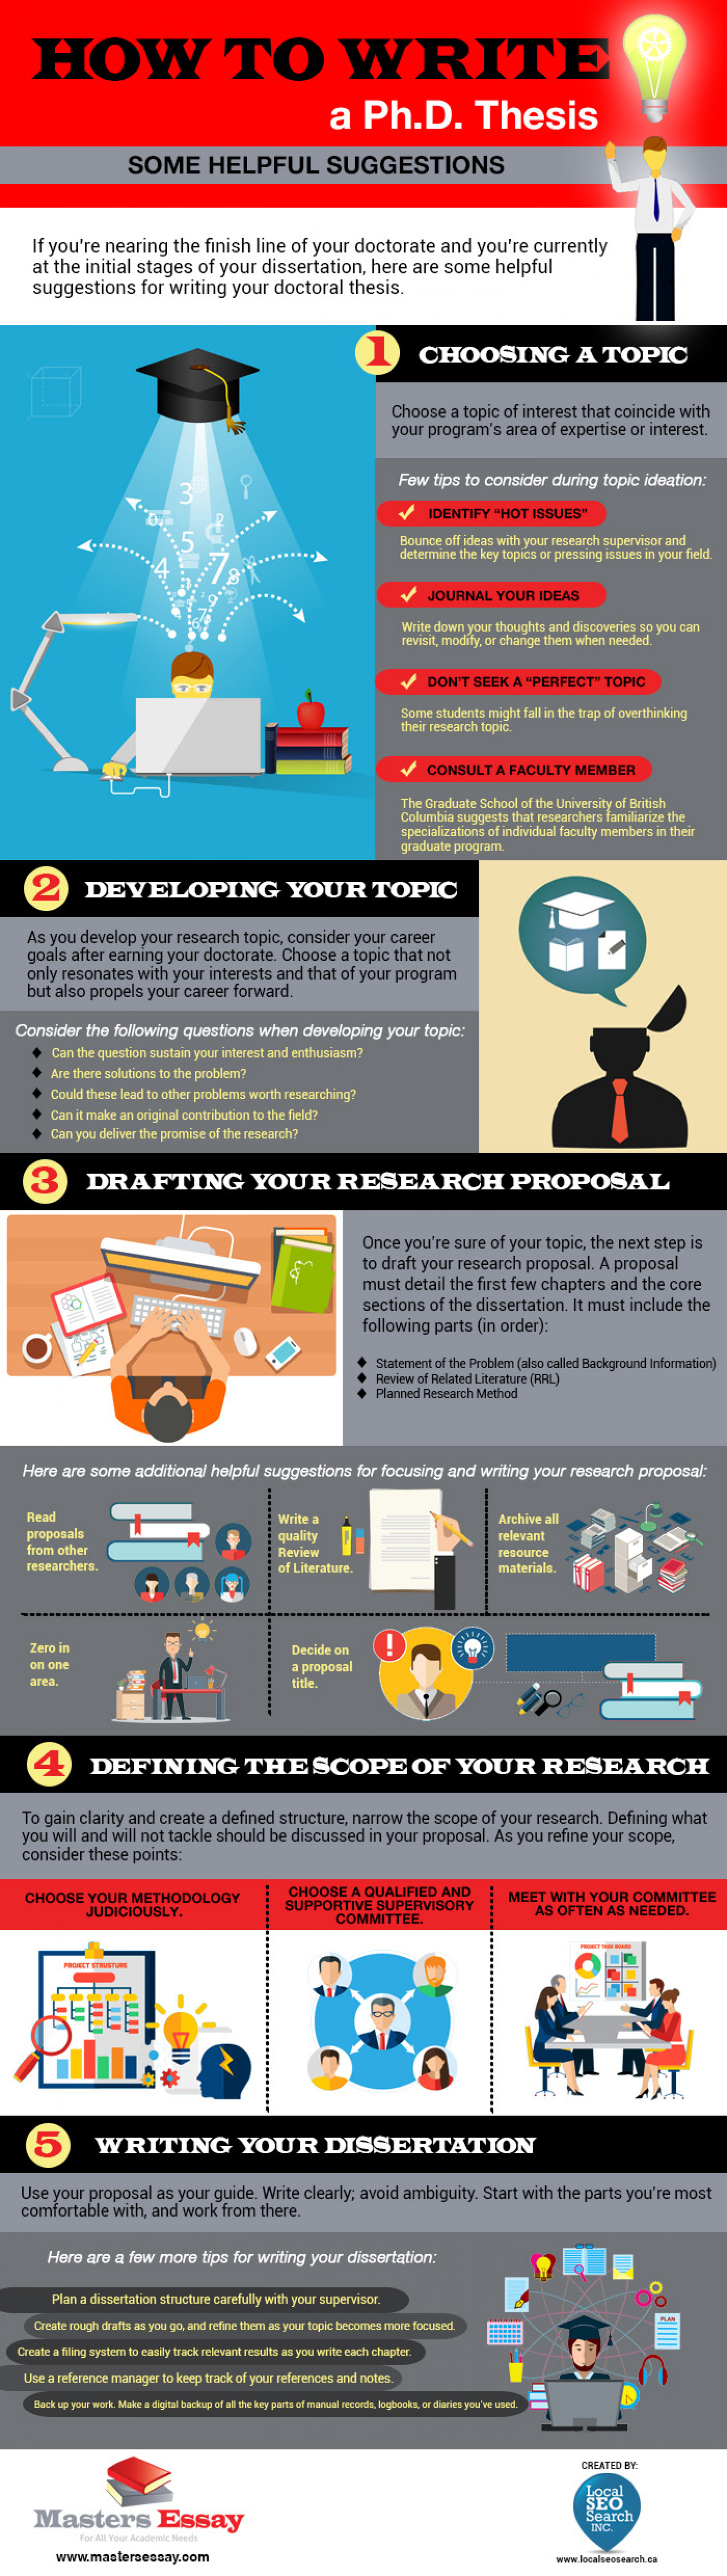 Masters Essay: How to Write A Ph.D. Thesis Infographic